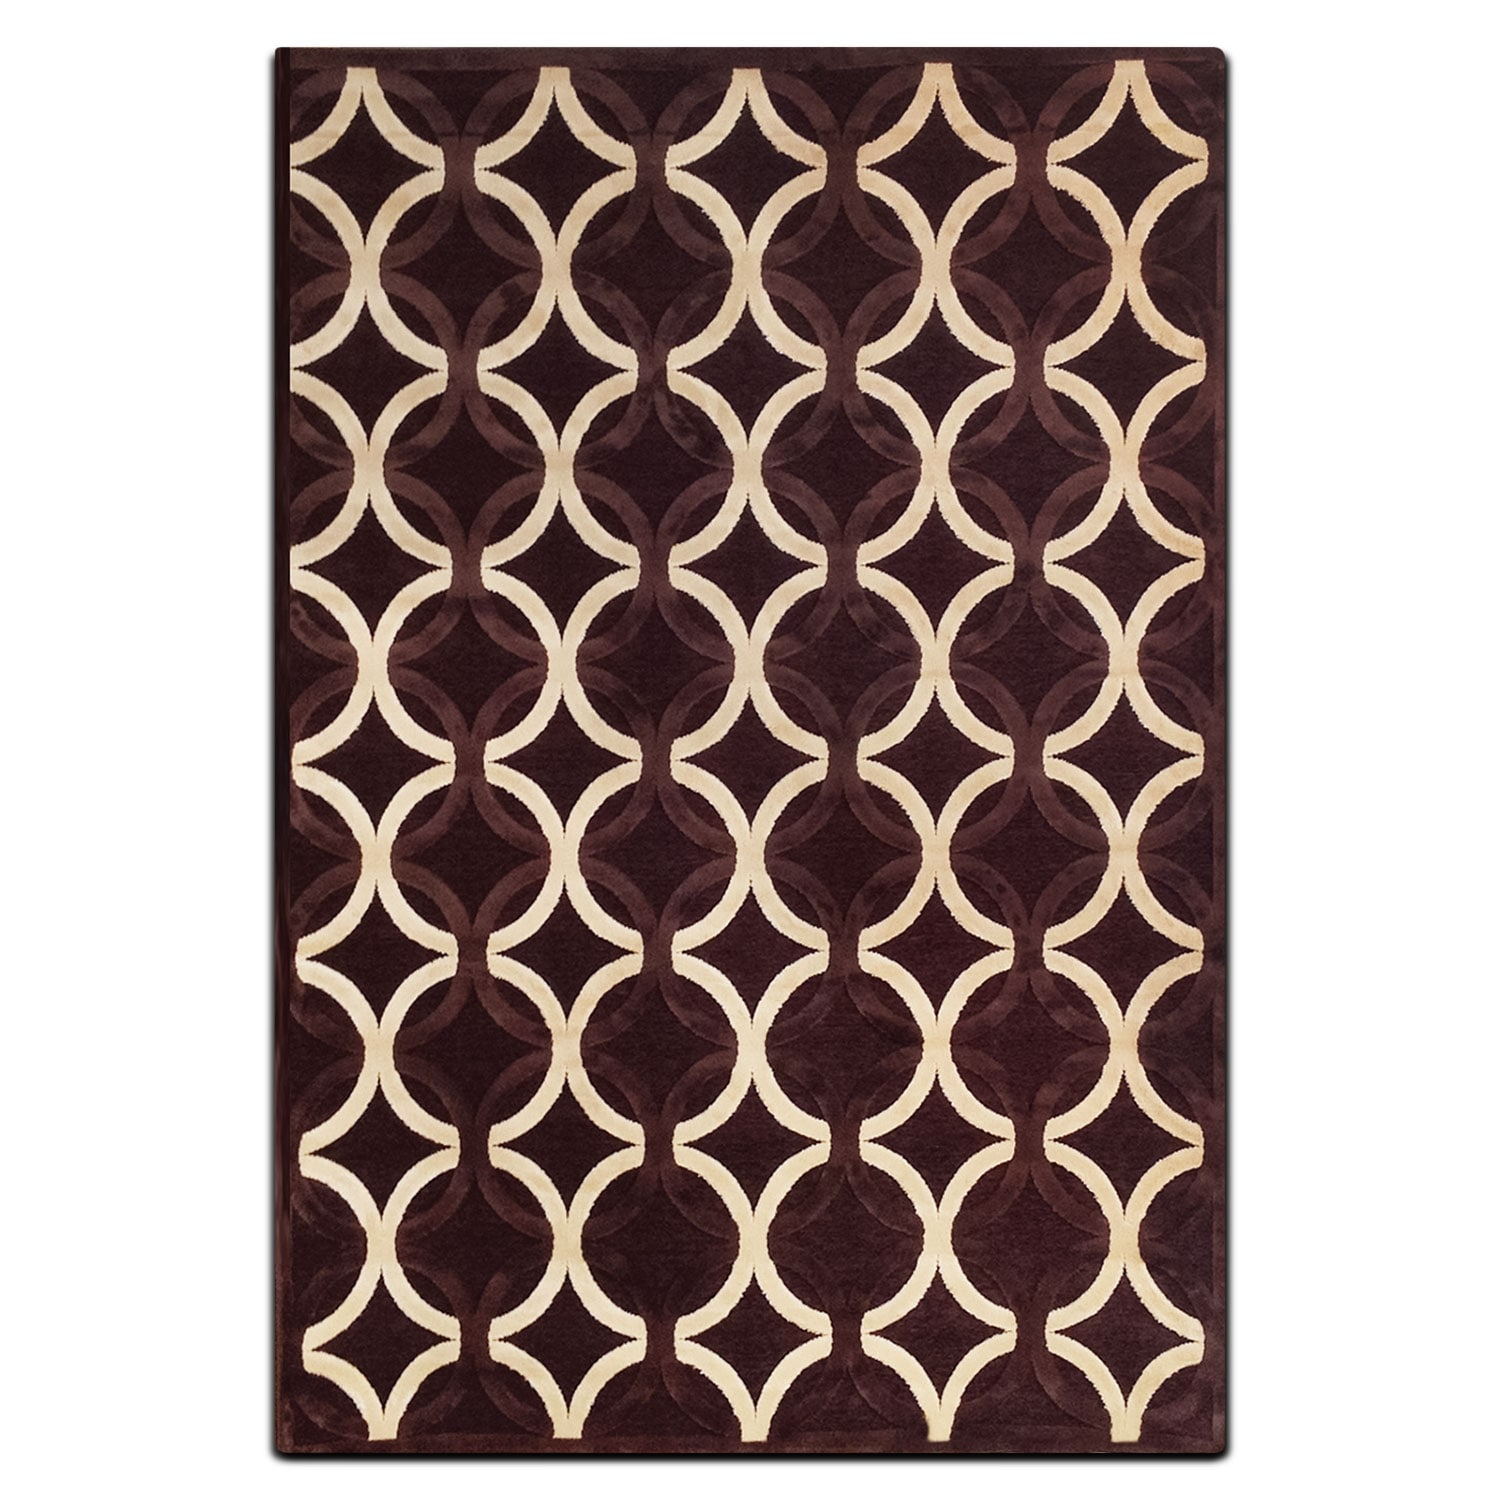 Rugs - Napa 8' x 10' Area Rug - Chocolate and Ivory